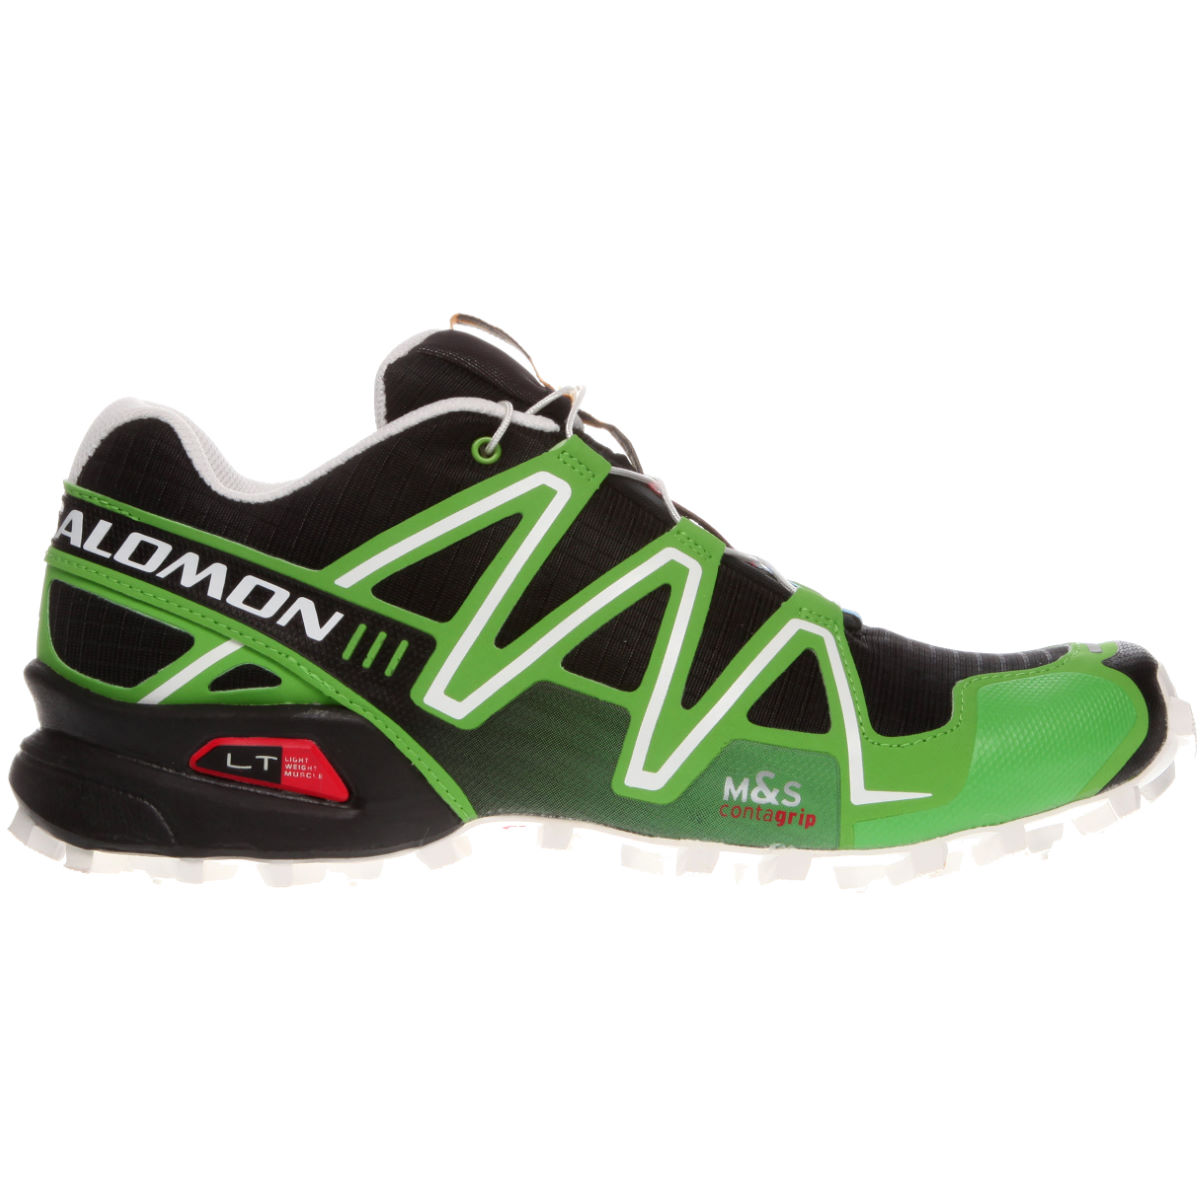 Salomon Speedcross 3 Shoes - SS13